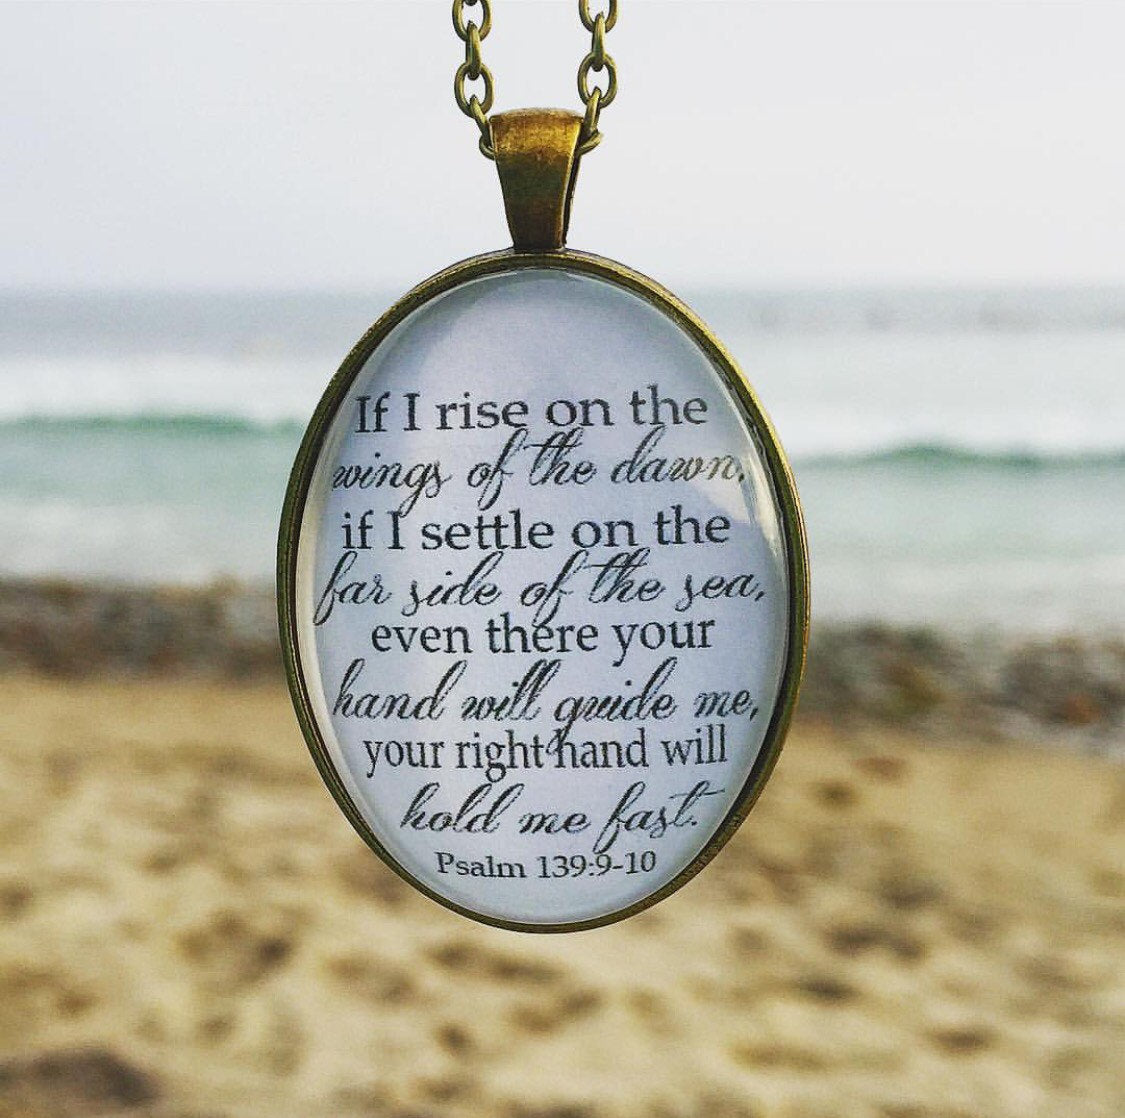 Psalm 139:9-10 Bible Verse Pendant Necklace - Redeemed Jewelry